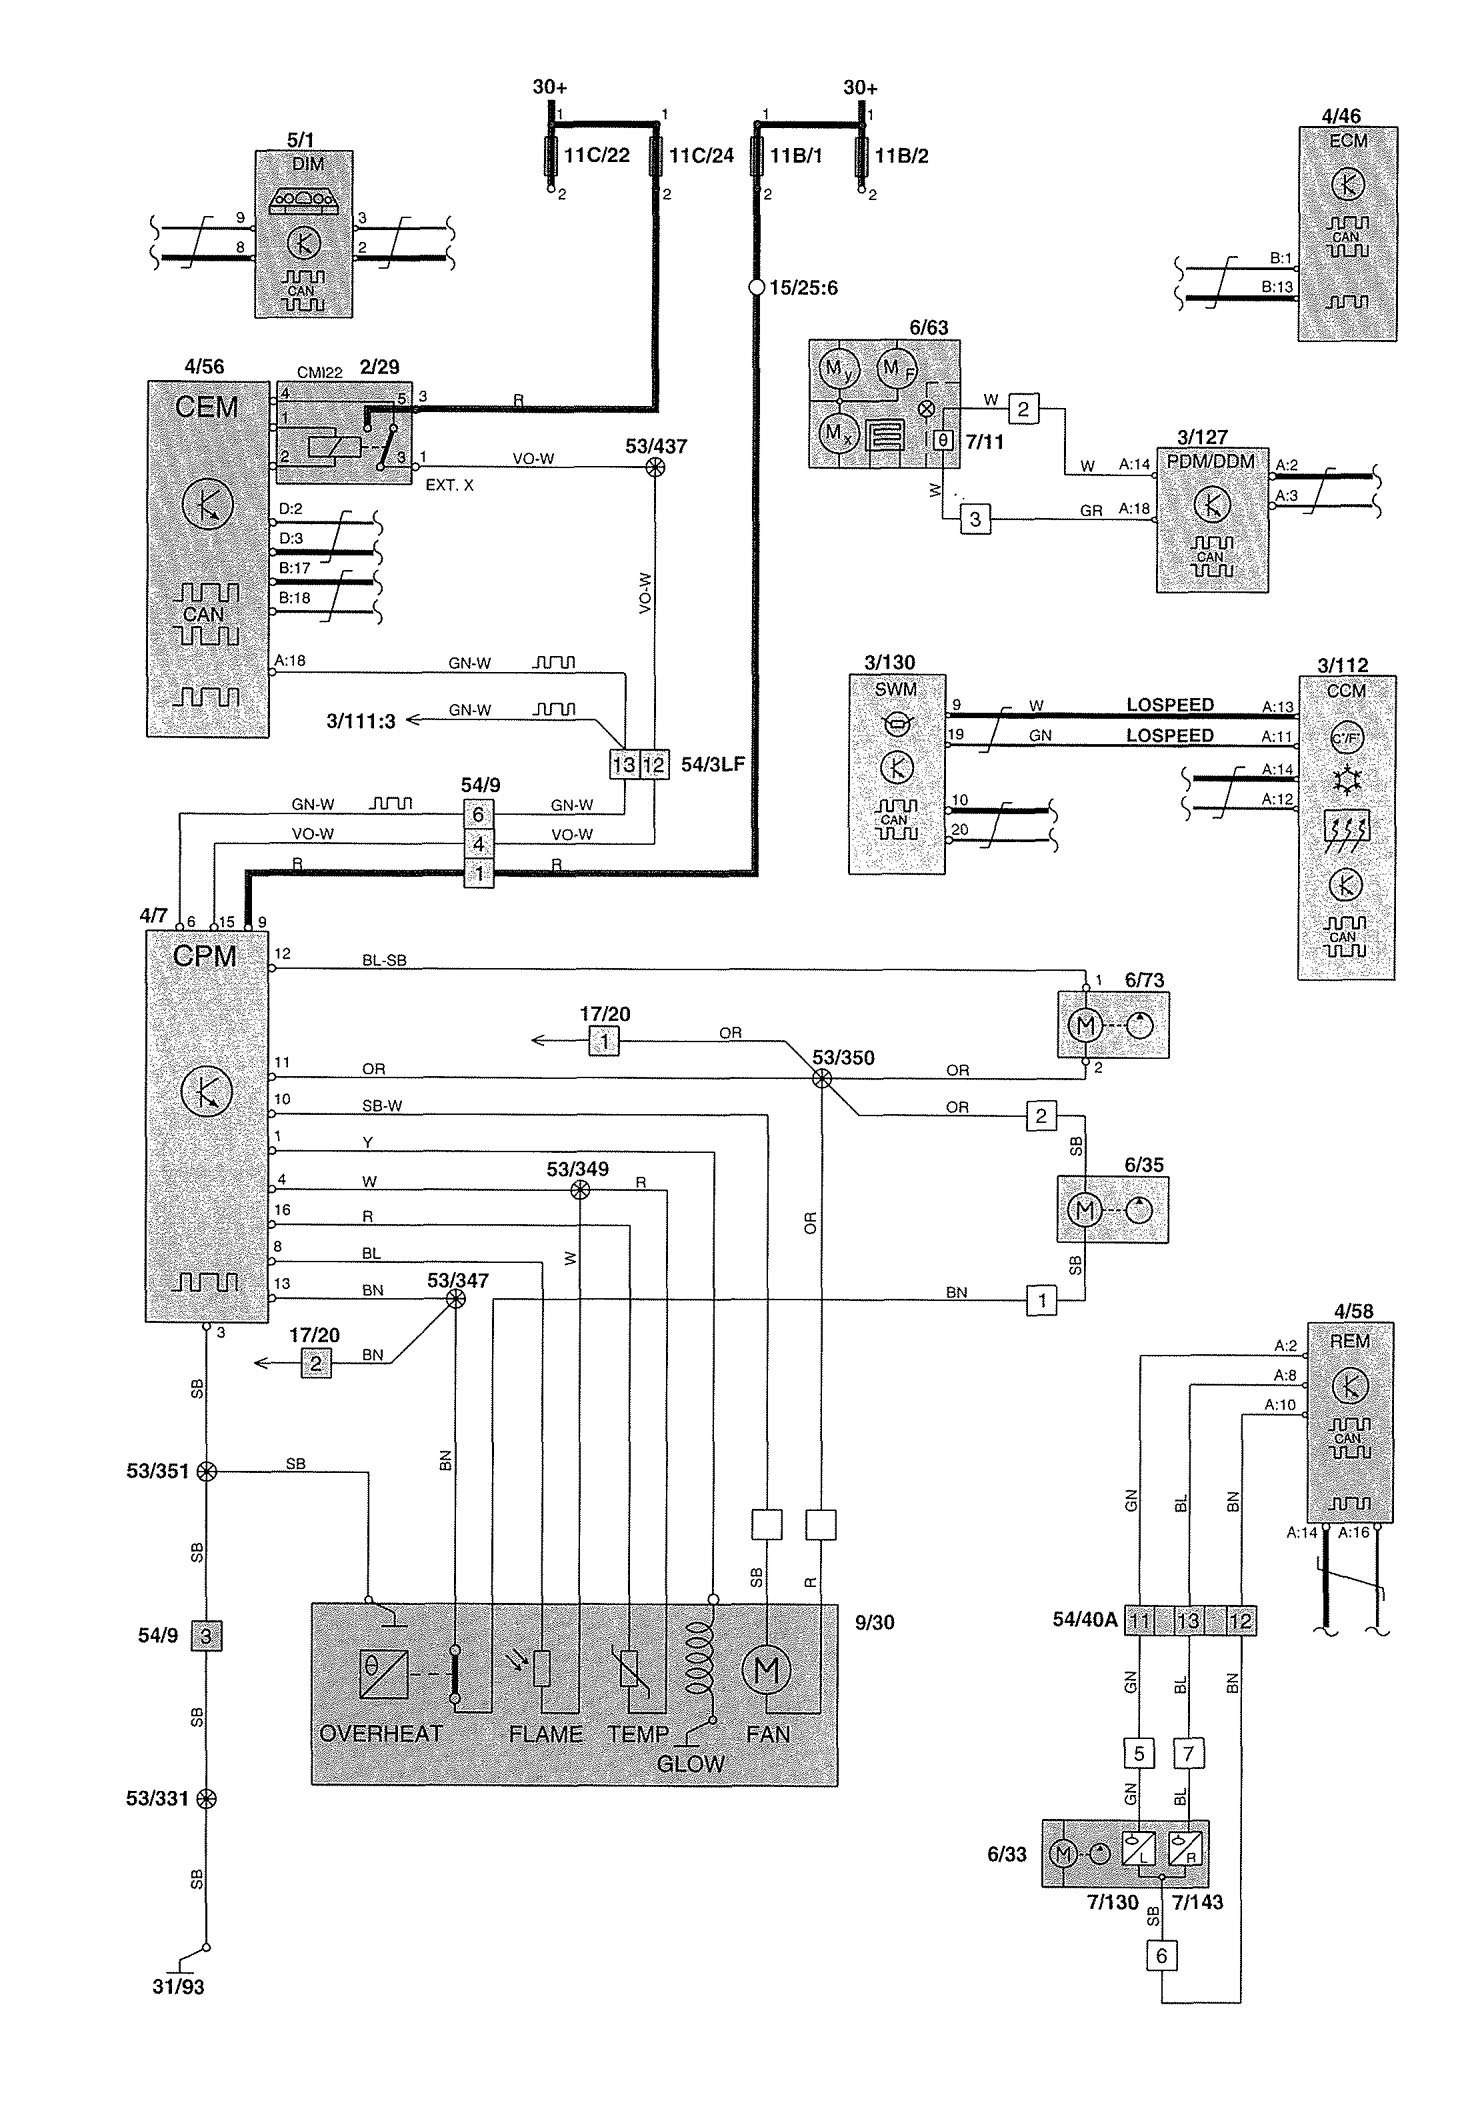 WE_4908] Wiring Diagram For Volvo Xc90 Download Diagram 2004 Volvo Xc90 Headlight Wiring Diagram Inki Gue45 Mohammedshrine Librar Wiring 101